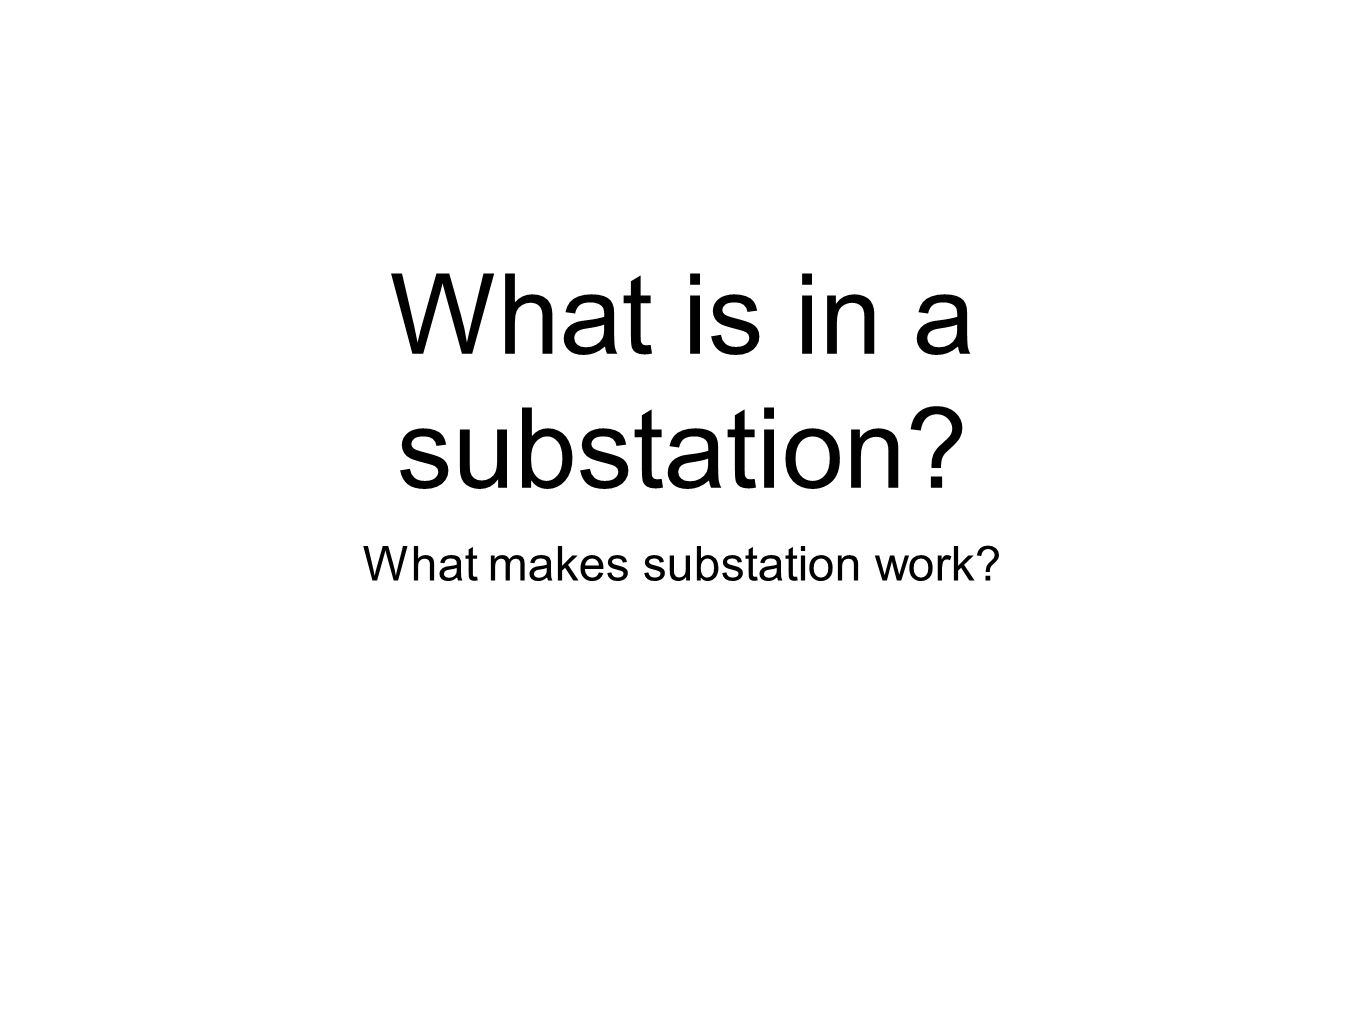 What makes substation work